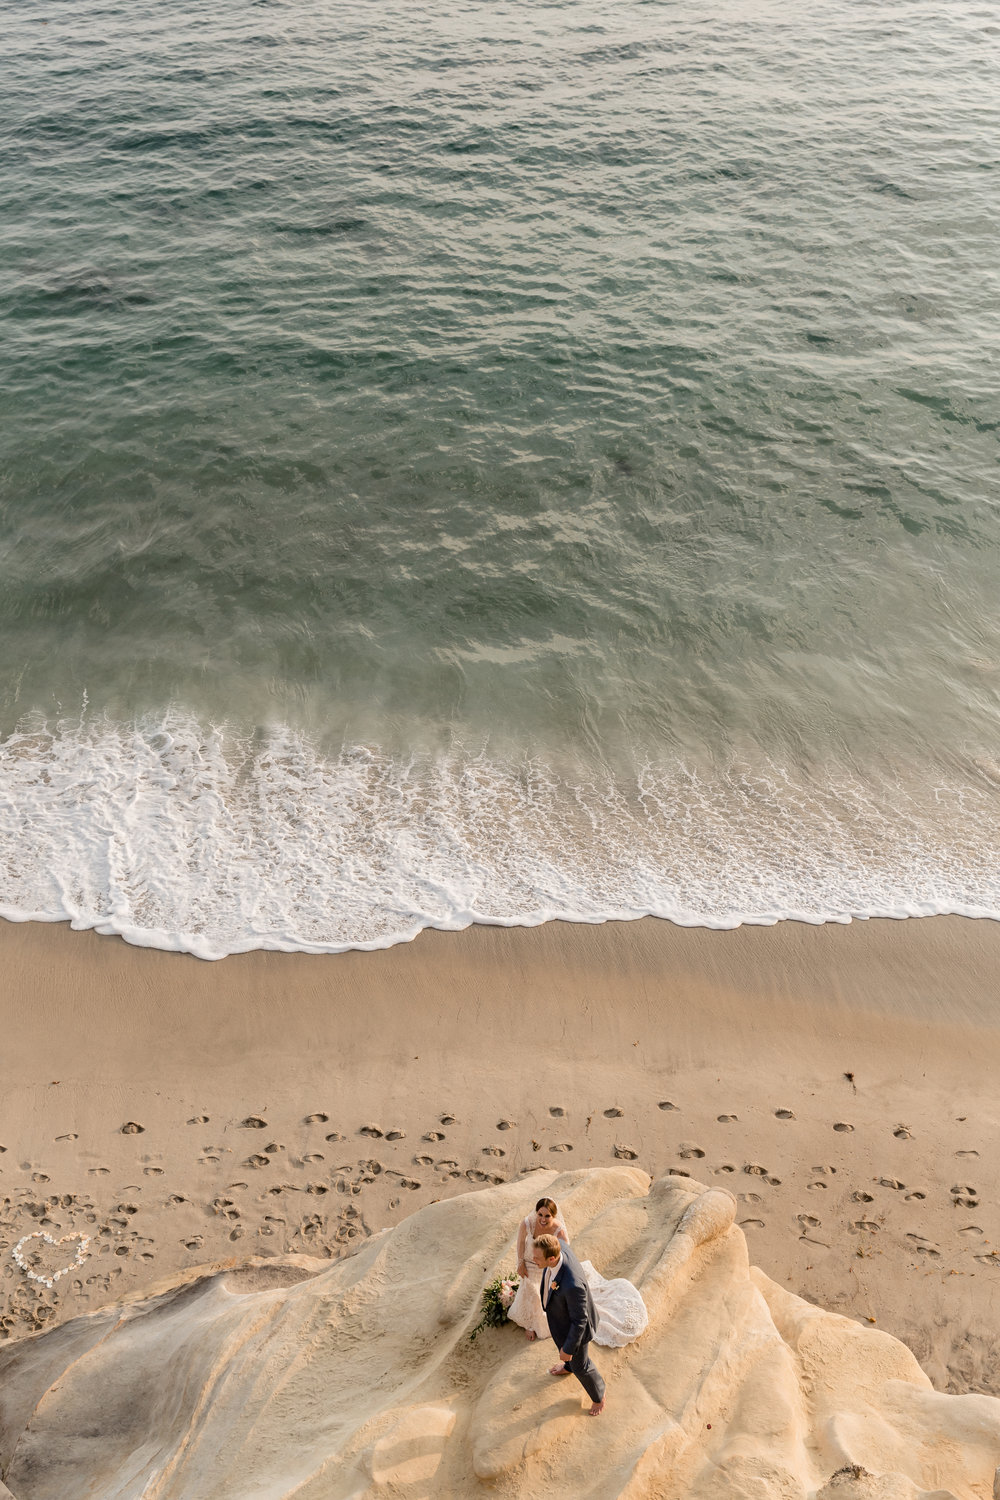 Hailley+Howard_The+Surf+and+Sand_Laguna+Beach_Wedding+Photography-66.jpg